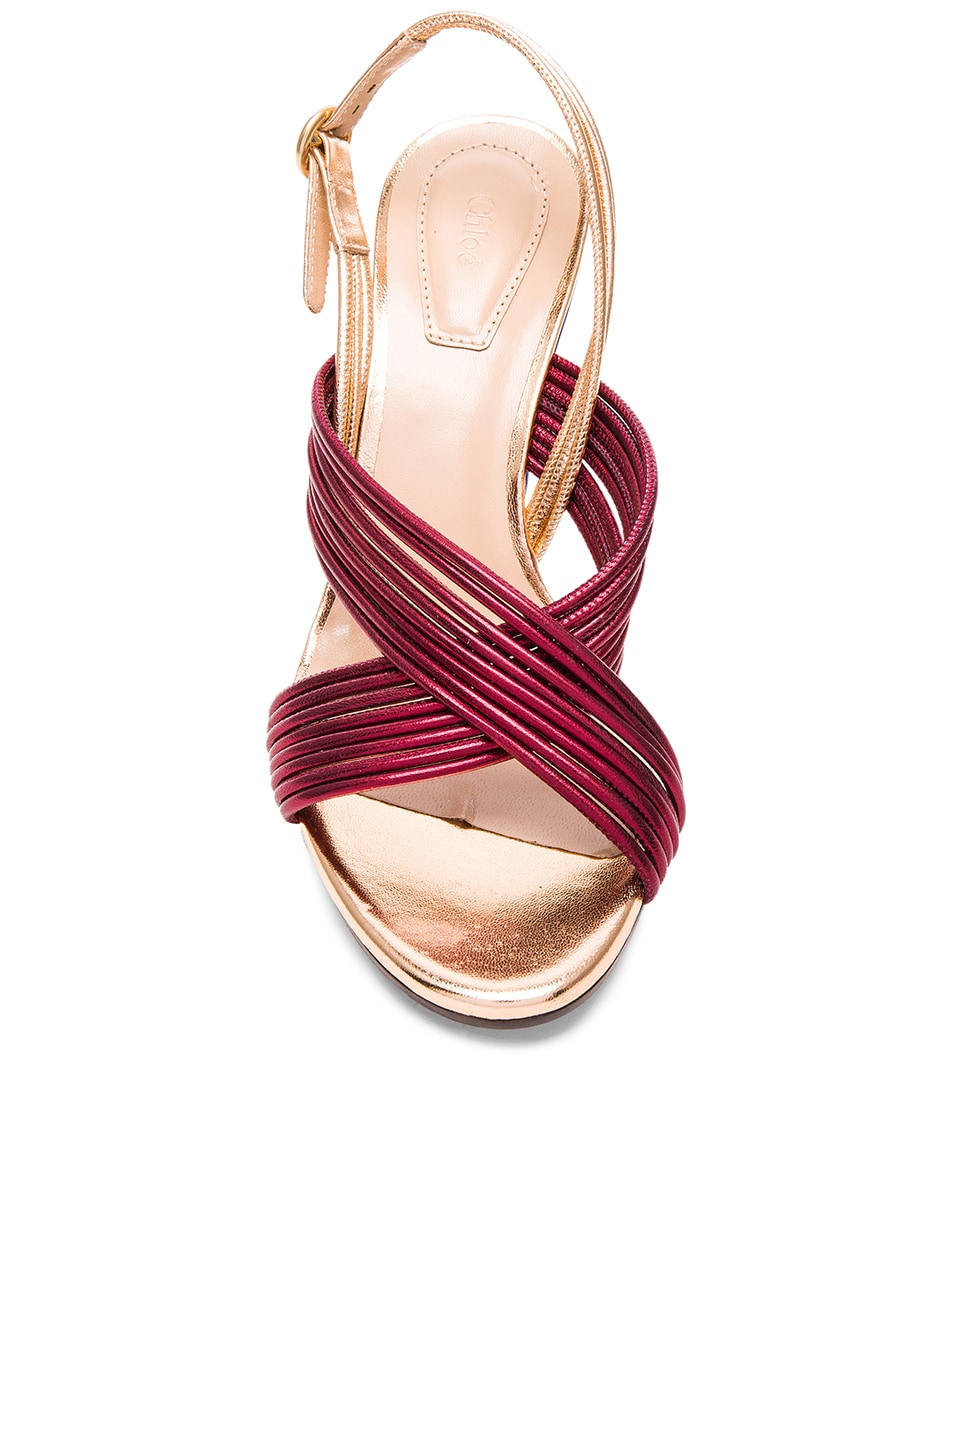 Image 4 of Chloe Leather Rainbow Sandals in Bordeaux Metallic